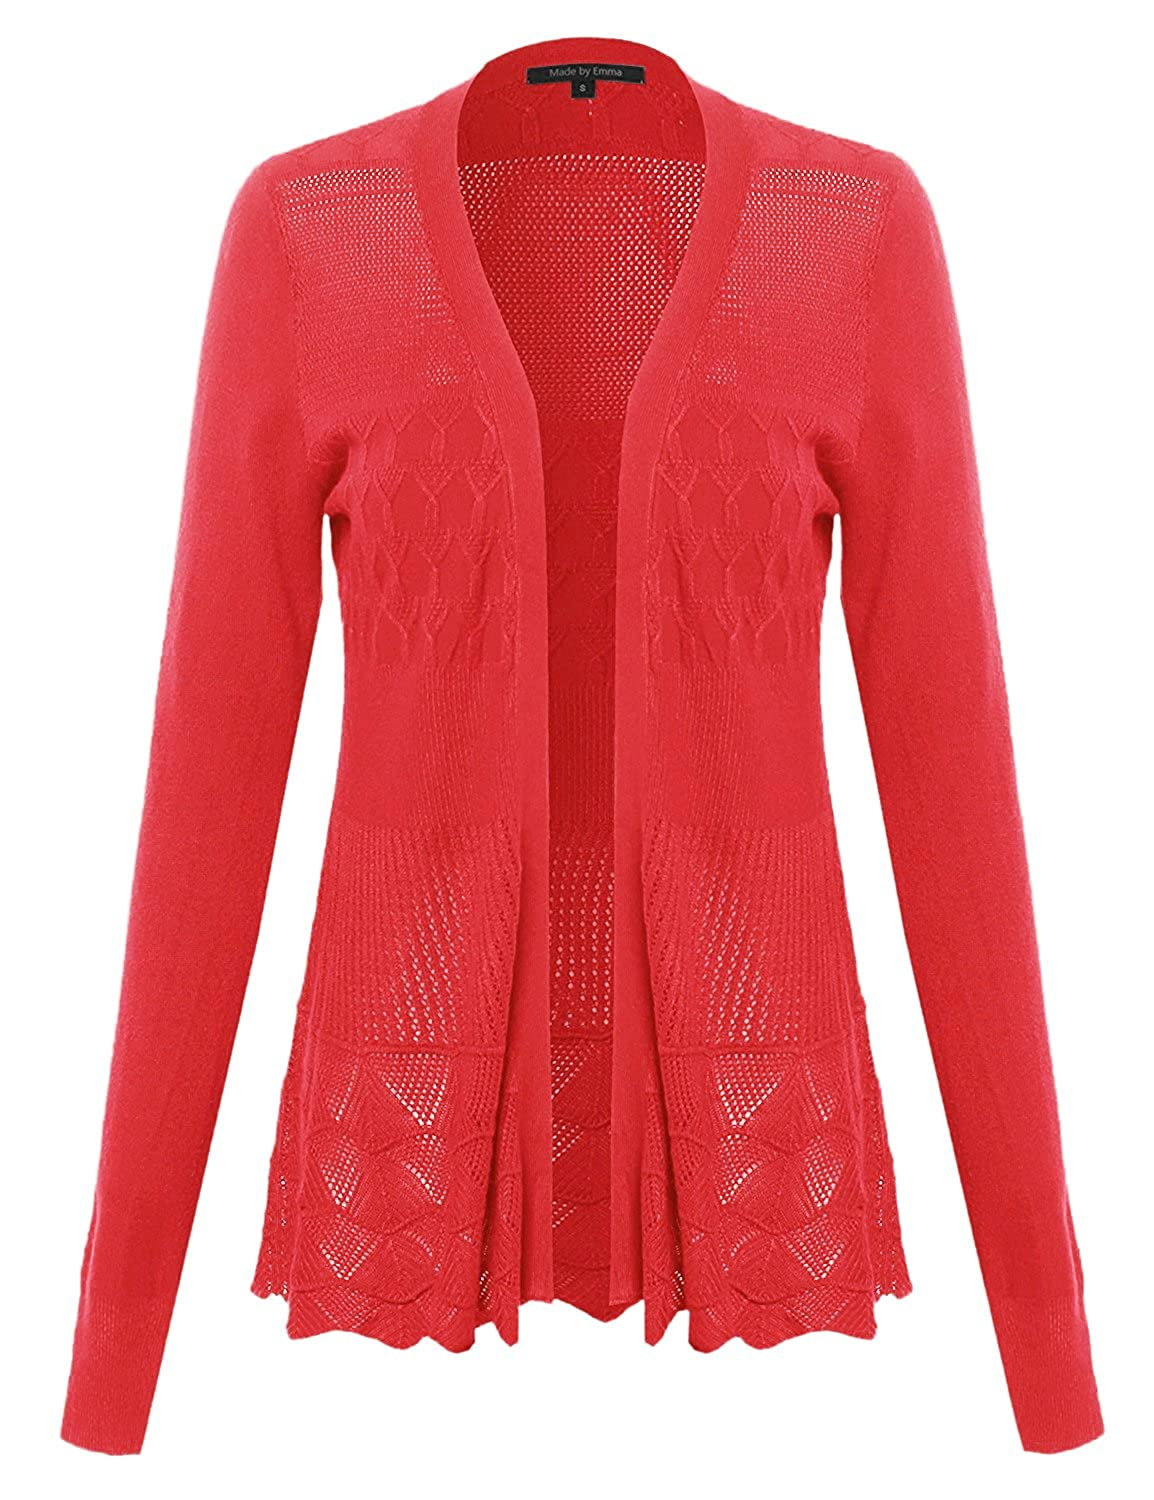 Fwocal014 Coral Made by Emma Women's Embroidery Lace Patterned Long Sleeves Cardigan Sweater